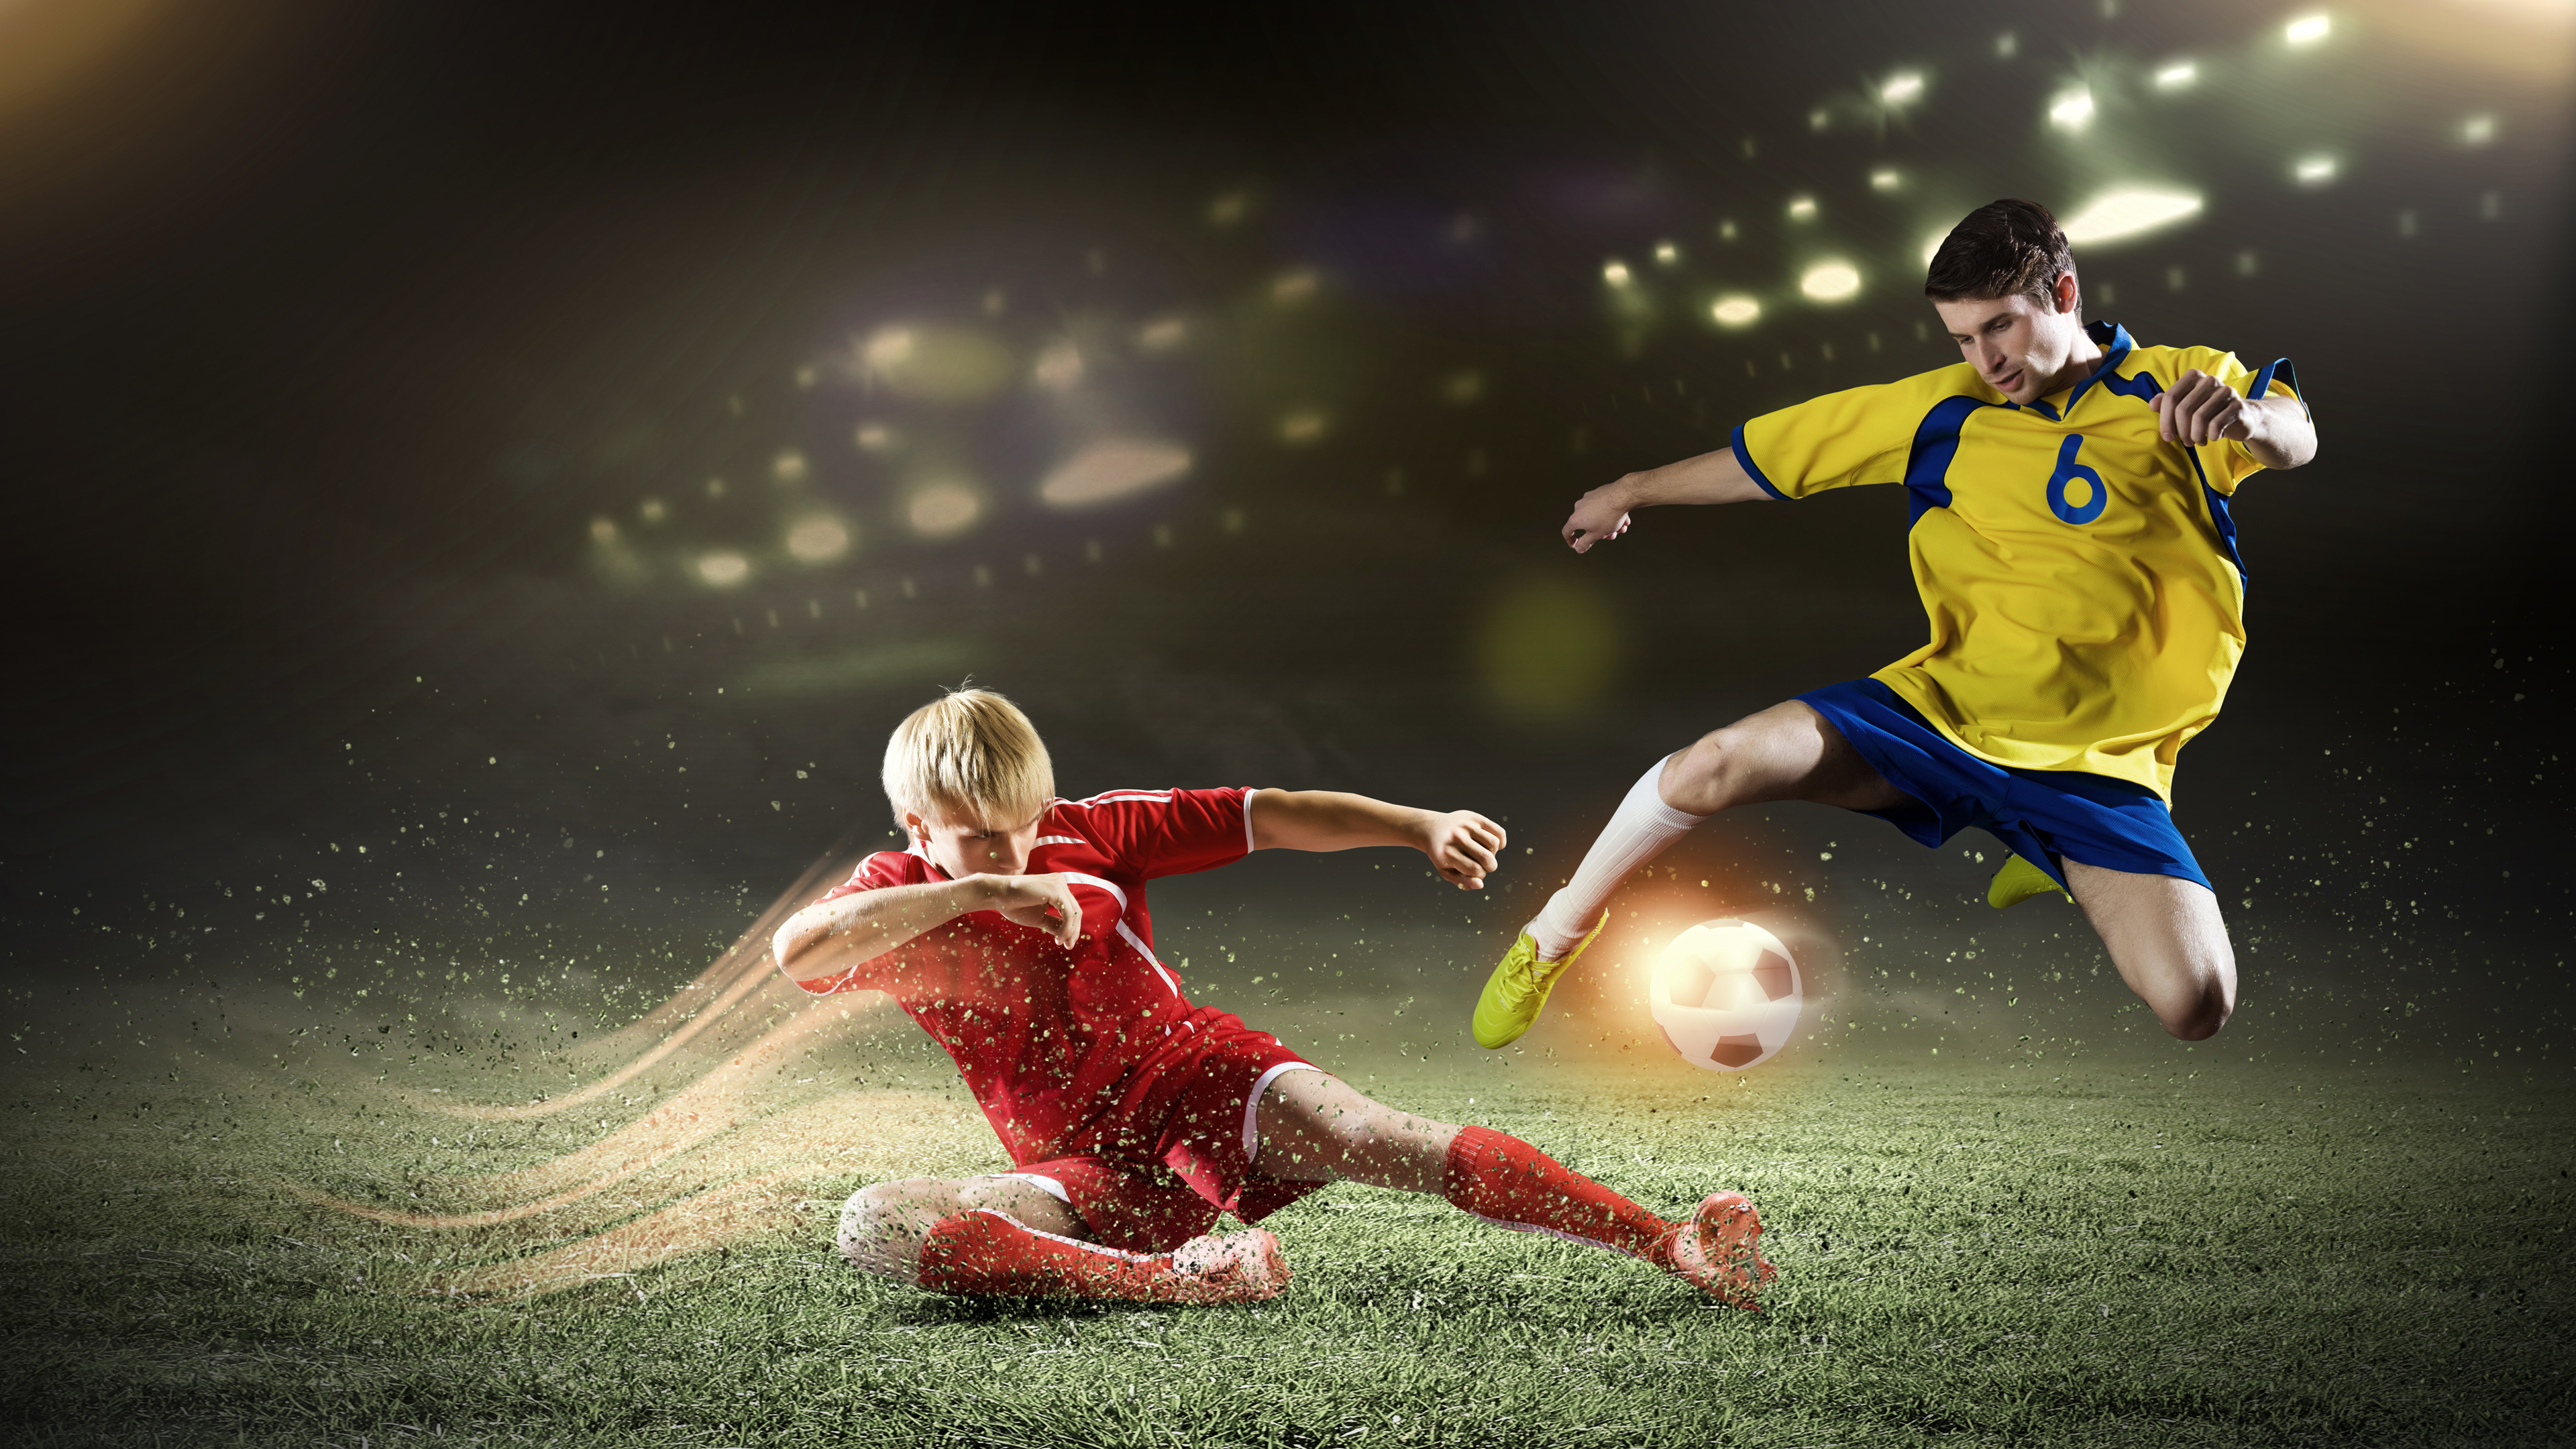 Soccer Players Football 4k Sports Wallpapers, Soccer